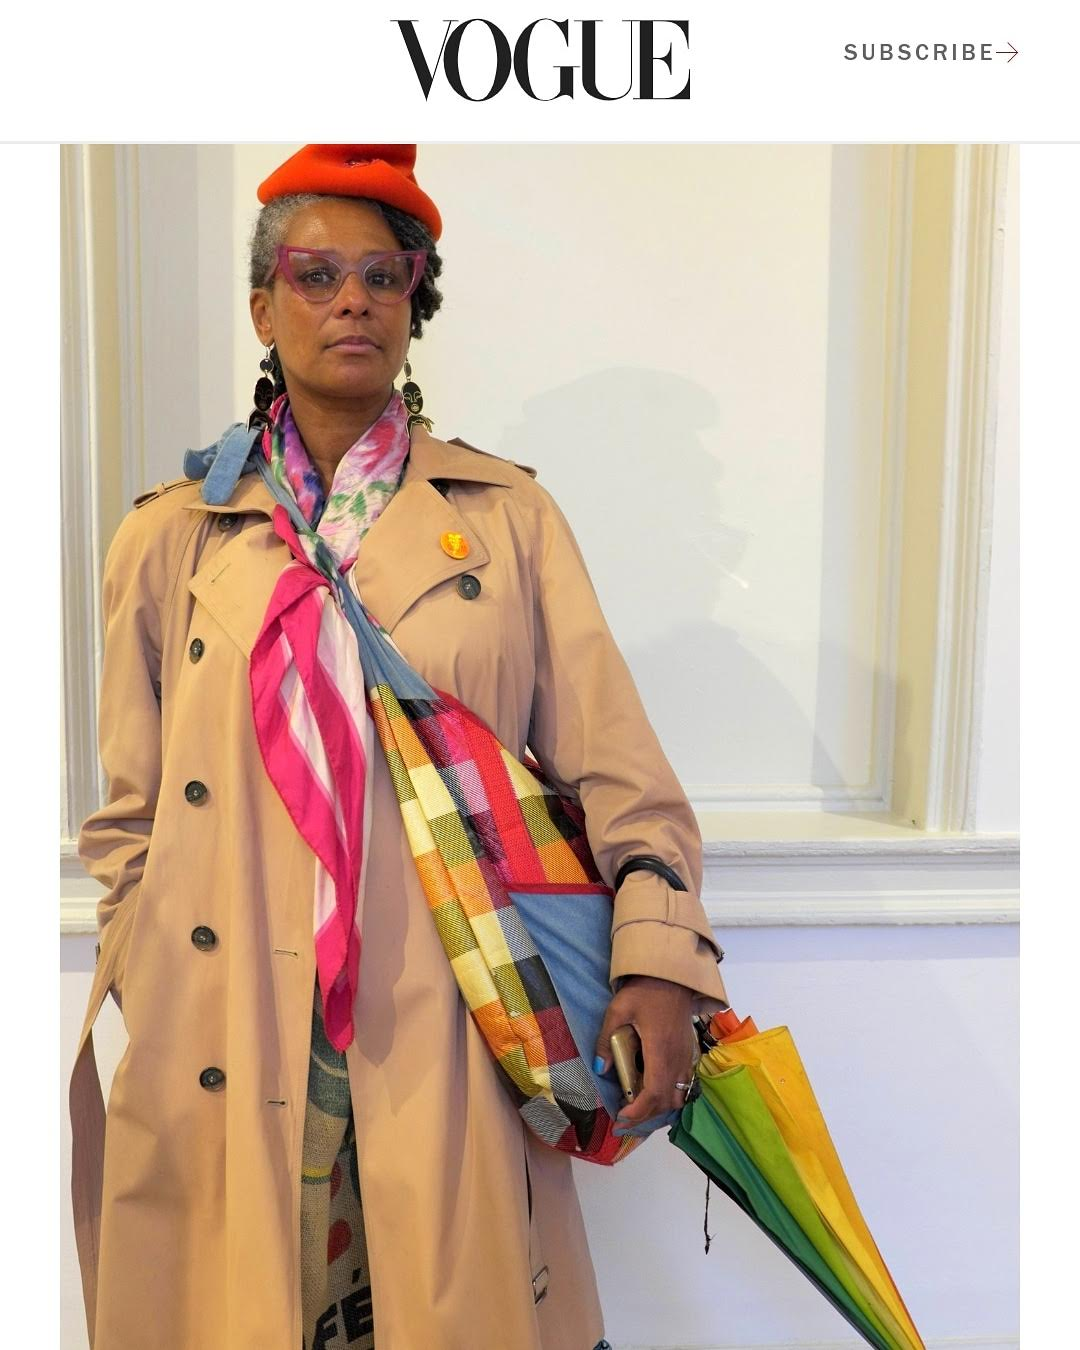 Papped at 1:54 African Art Fair by Osaretin Ugiabe for Duro Olowu Street Style picks for American Vogue. Ok then! October 2018.